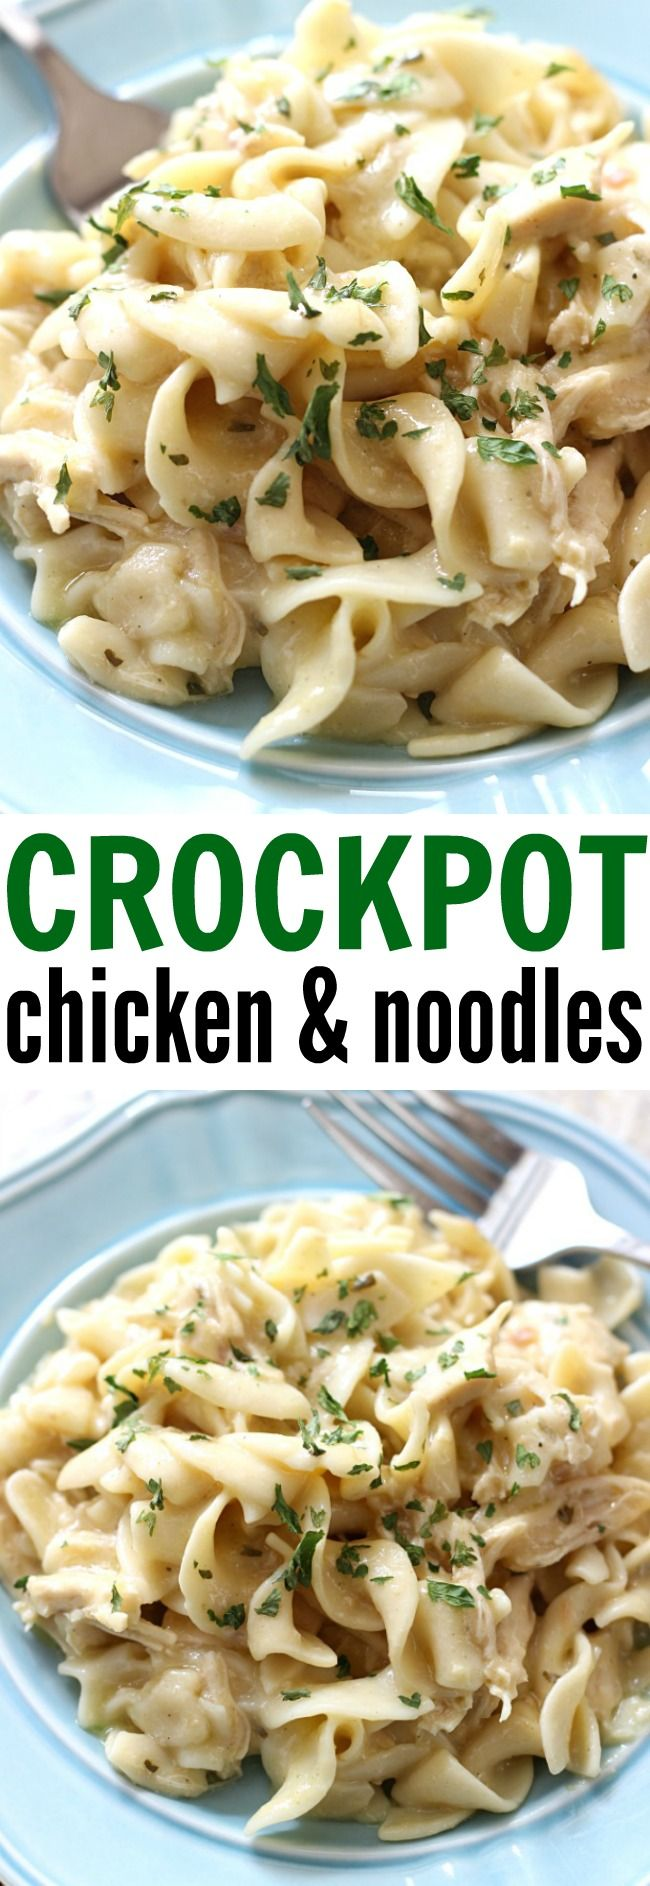 Best 25 Frozen Chicken In Crockpot Ideas On Pinterest Meatball Stroganoff Frozen Chicken Crock Pot And Crockpot Frozen Chicken